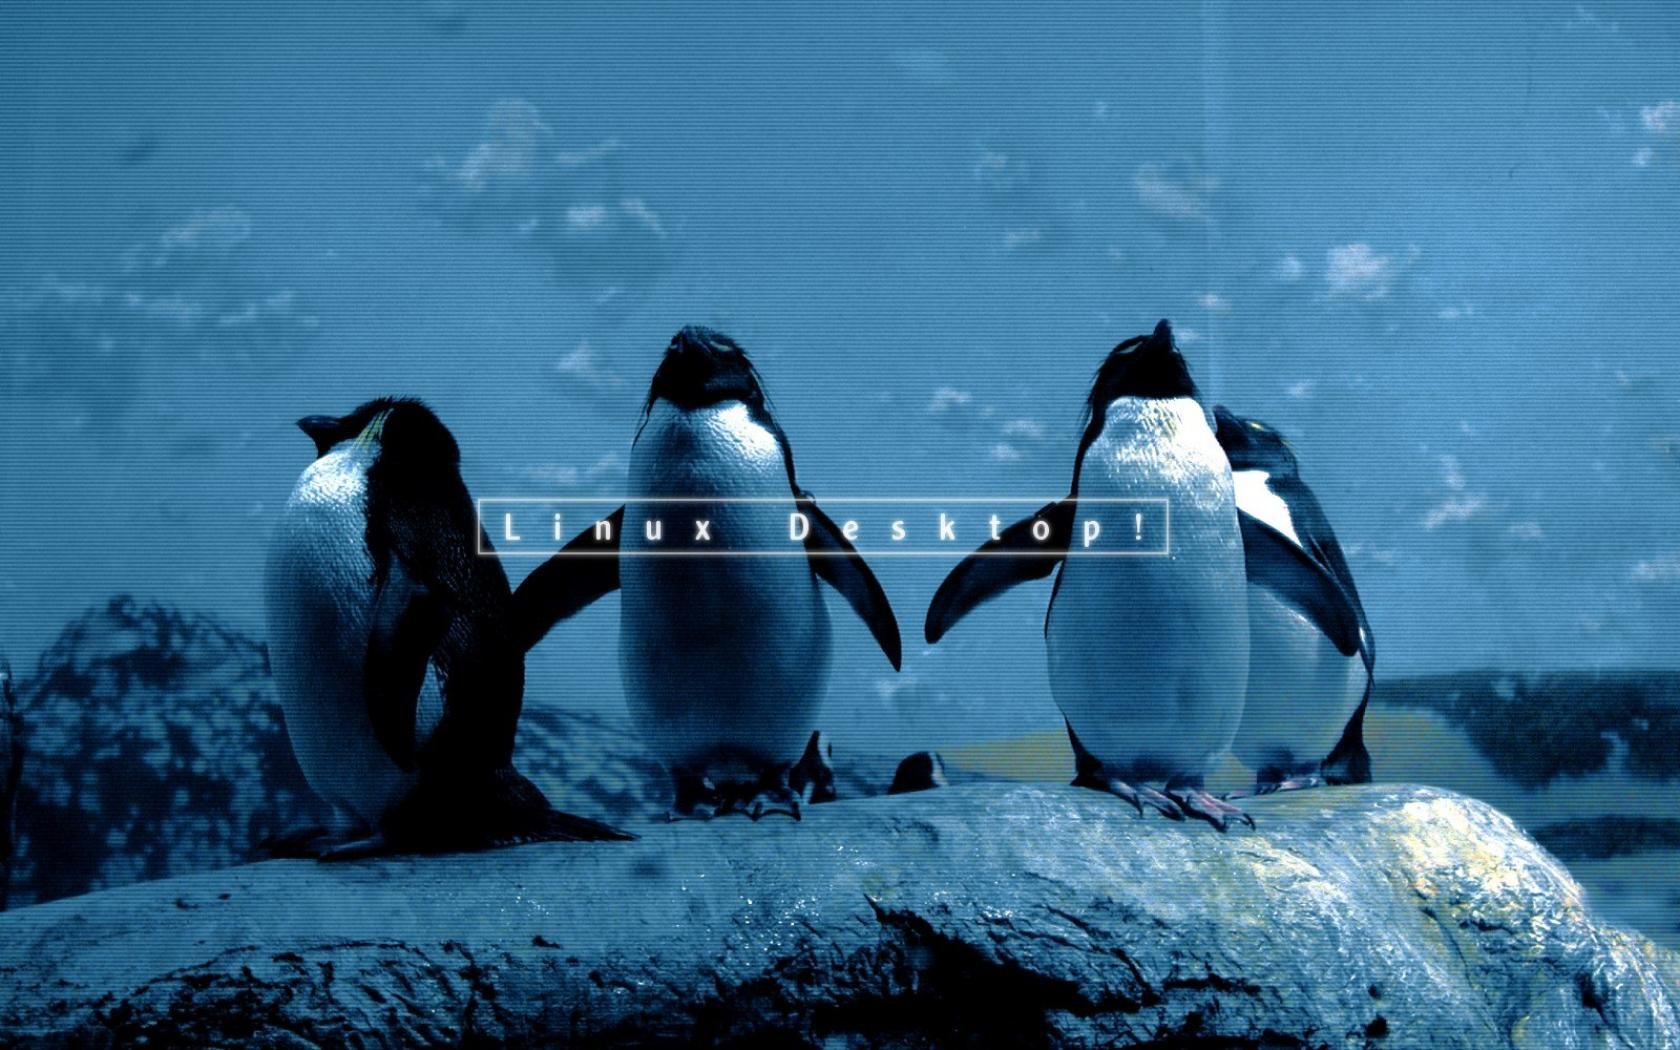 Linux wallpaper 1600x1200 HQ WALLPAPER   43611 1680x1050